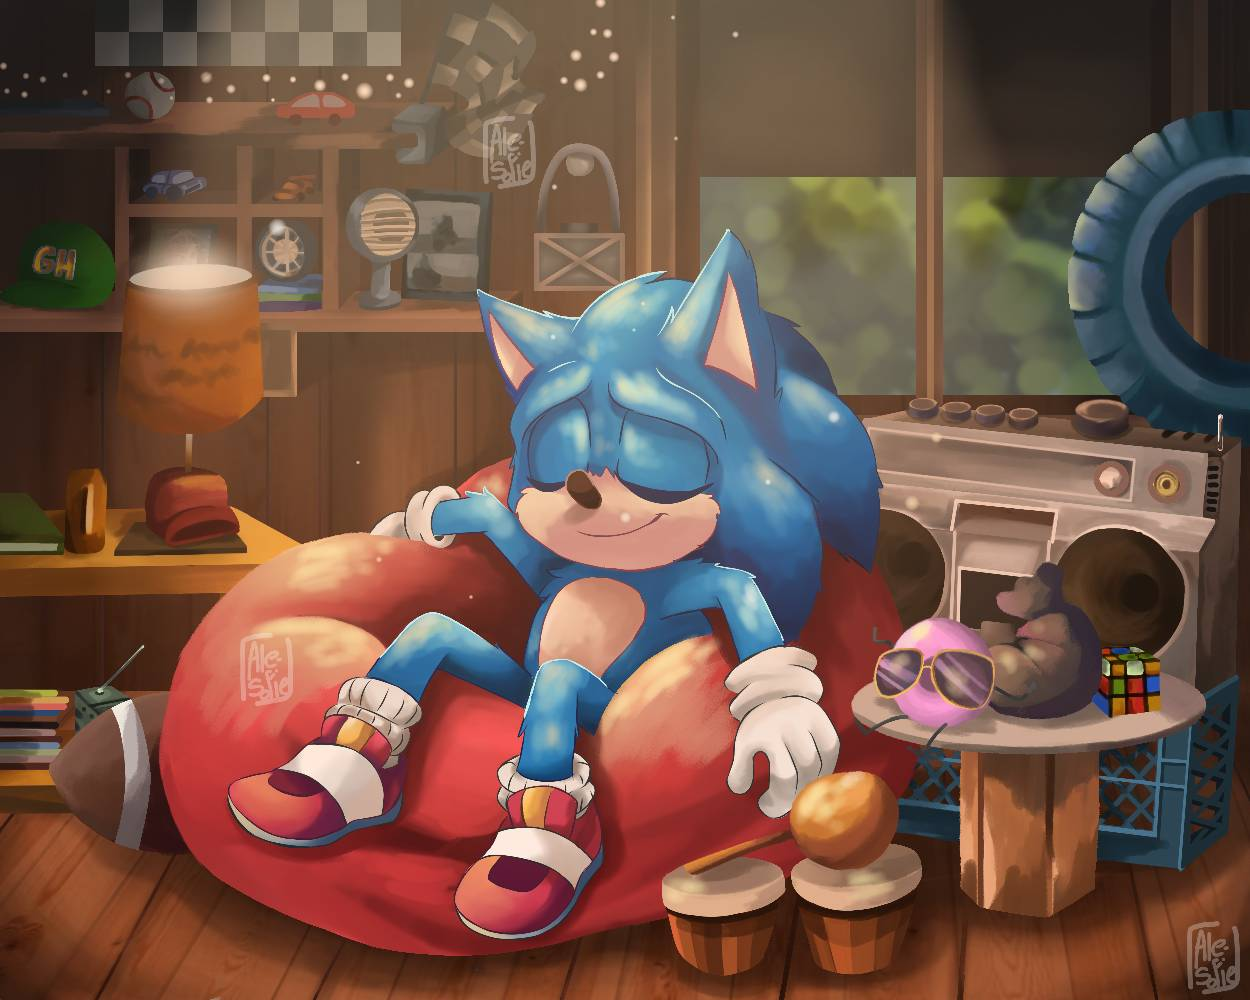 New Home Sonic The Hedgehog Movie By Astiell Aleks On Deviantart